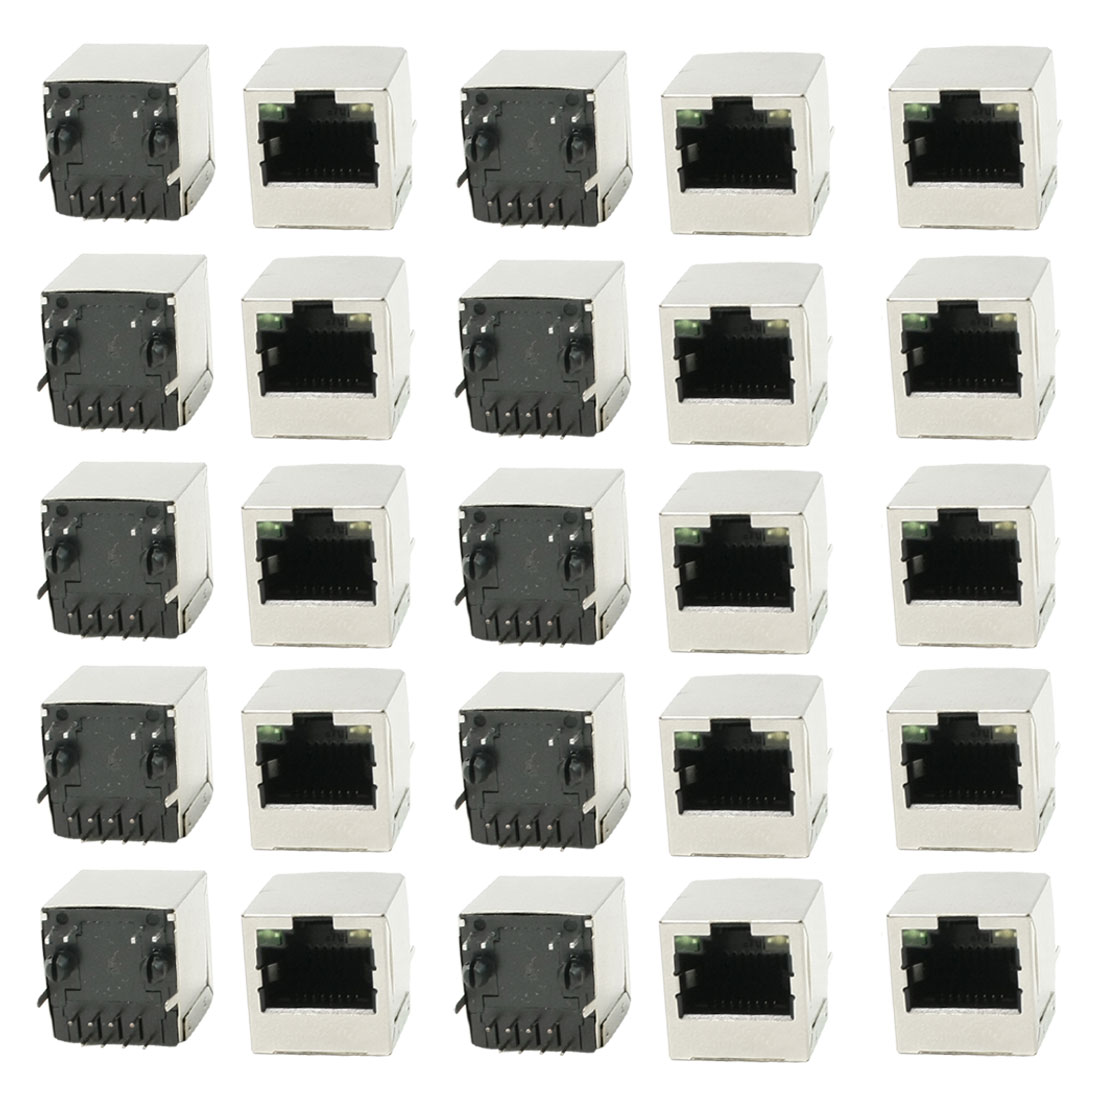 Vertical PCB Mounting LED Indicator Light RJ45 8P8C Shielded Jacks 25Pcs